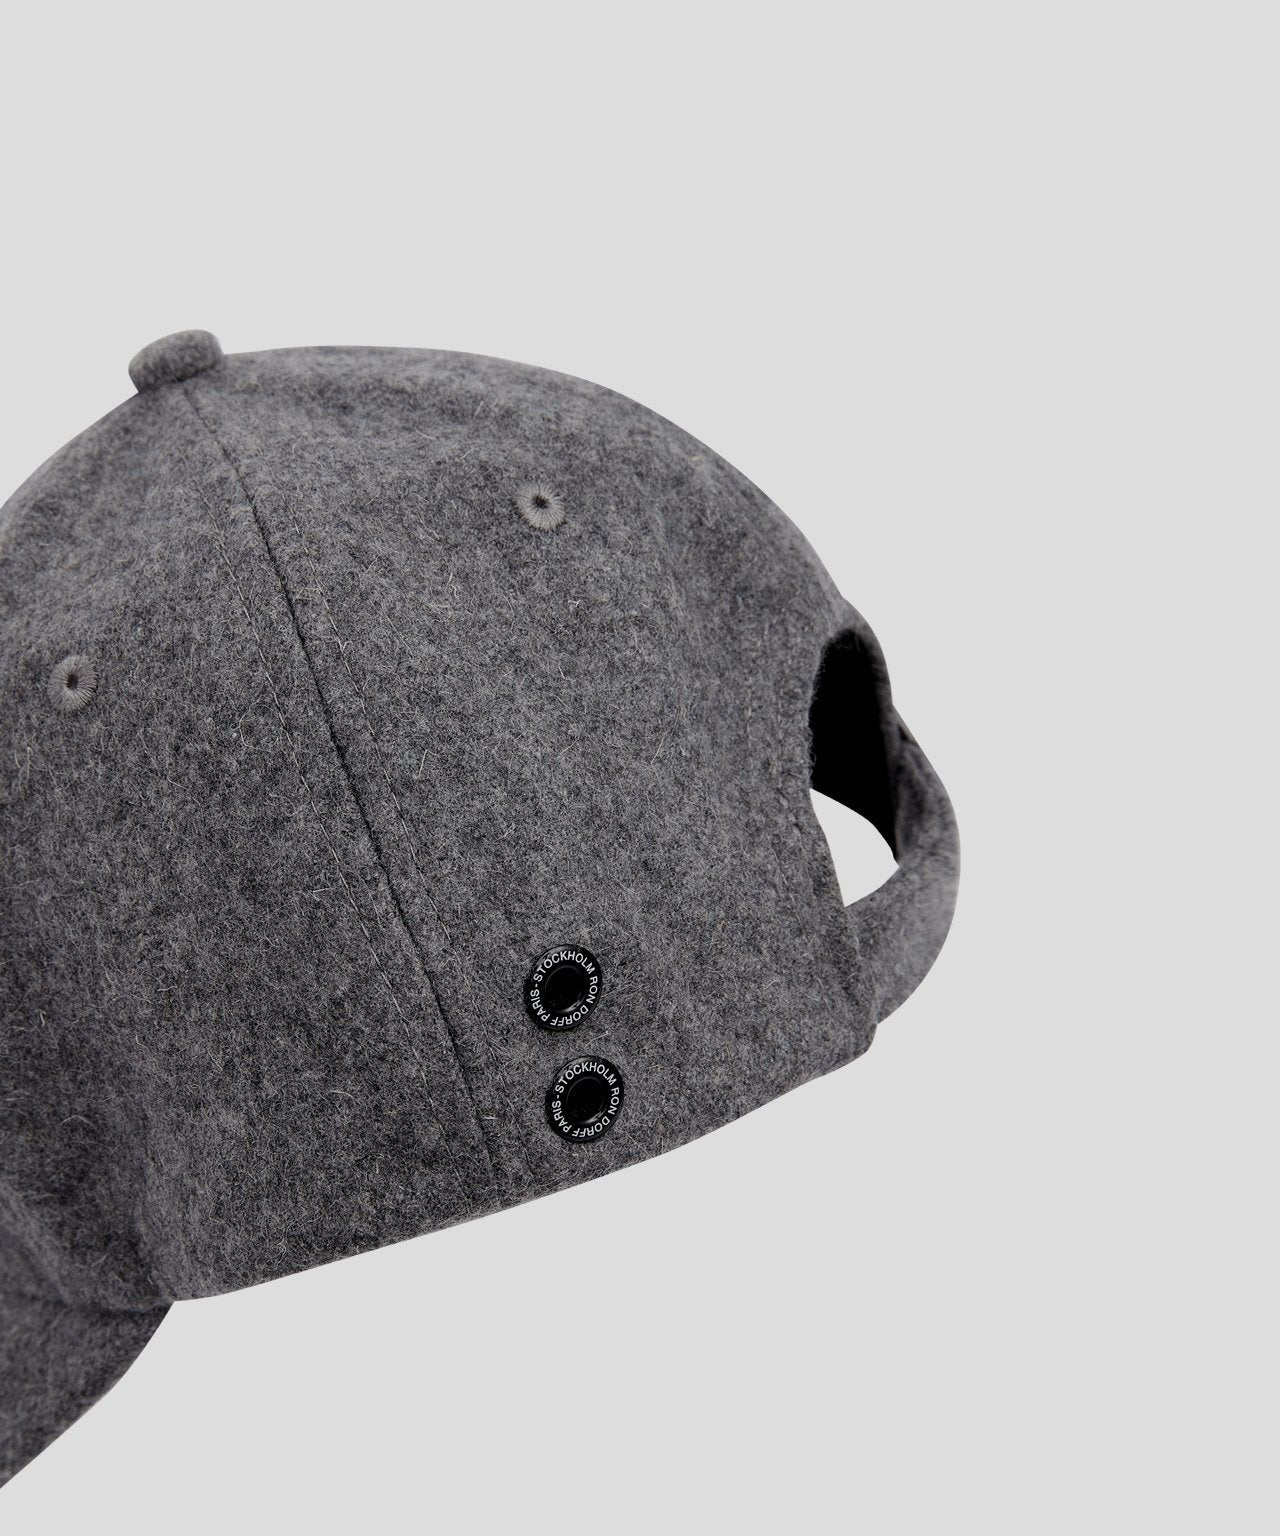 Wool Cap DISCIPLINE His for Her - grey melange